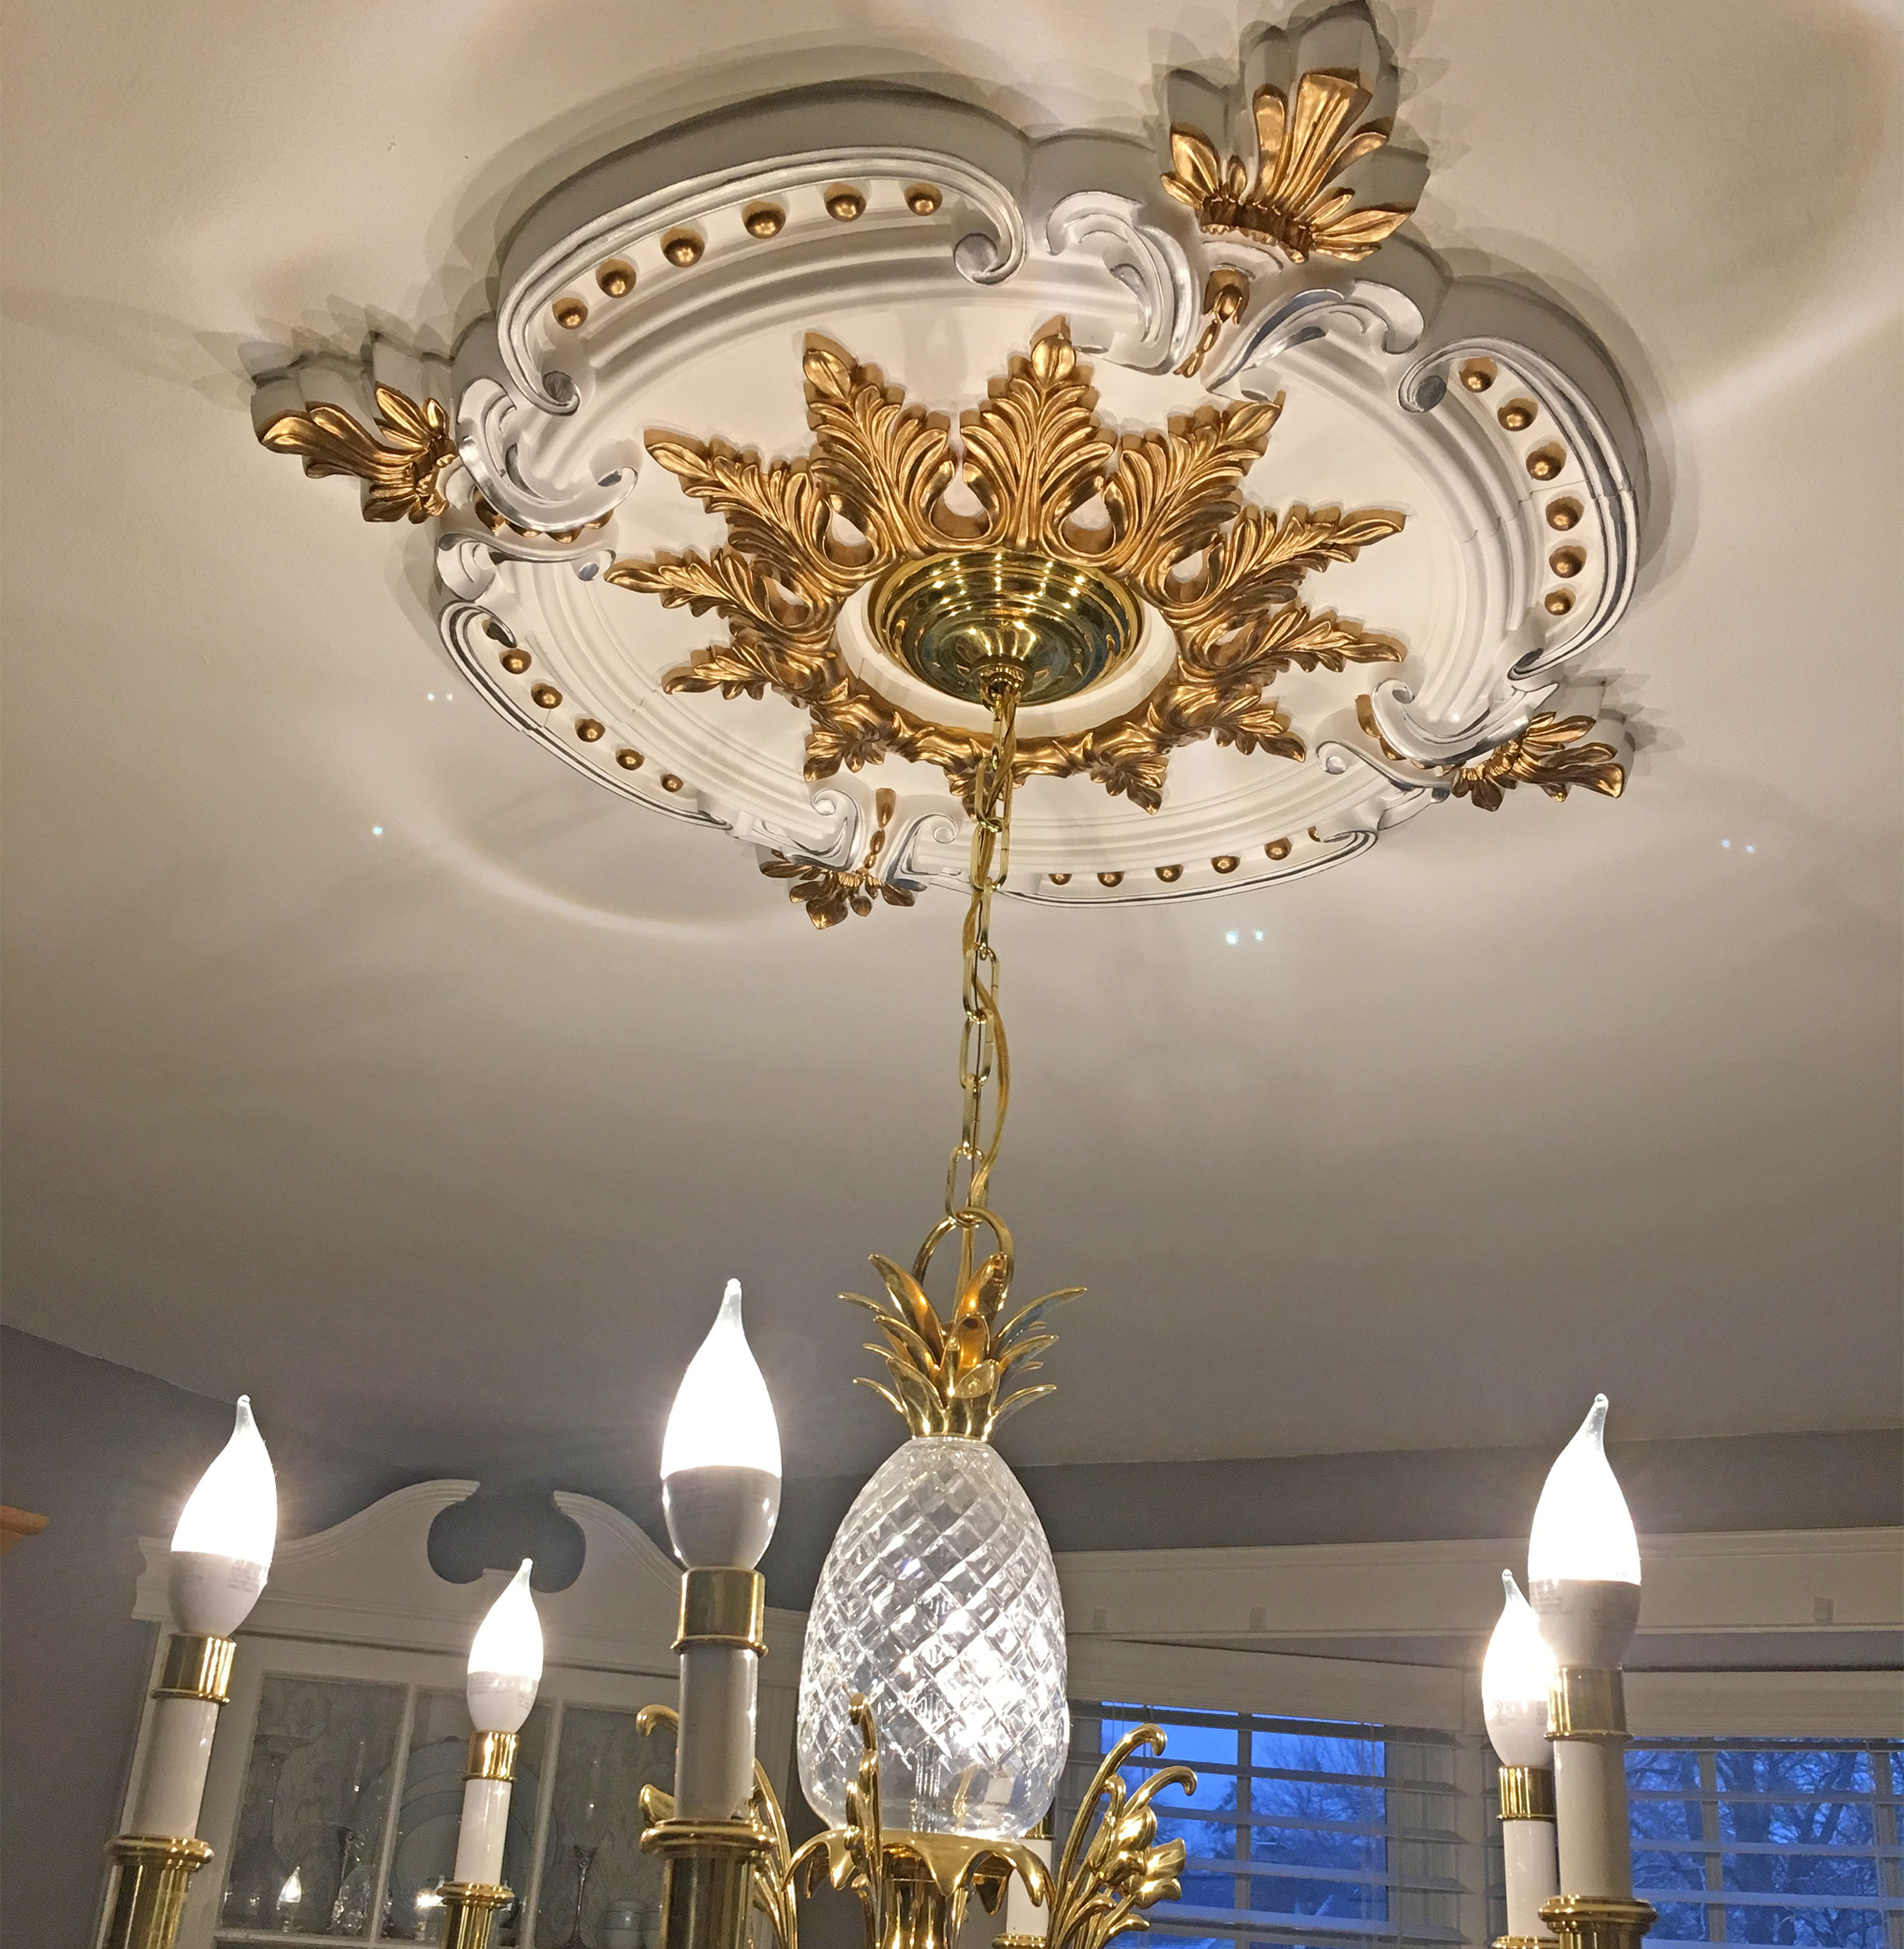 d lighting ceiling b medallion the o millwork in ekena accessories n x medallions